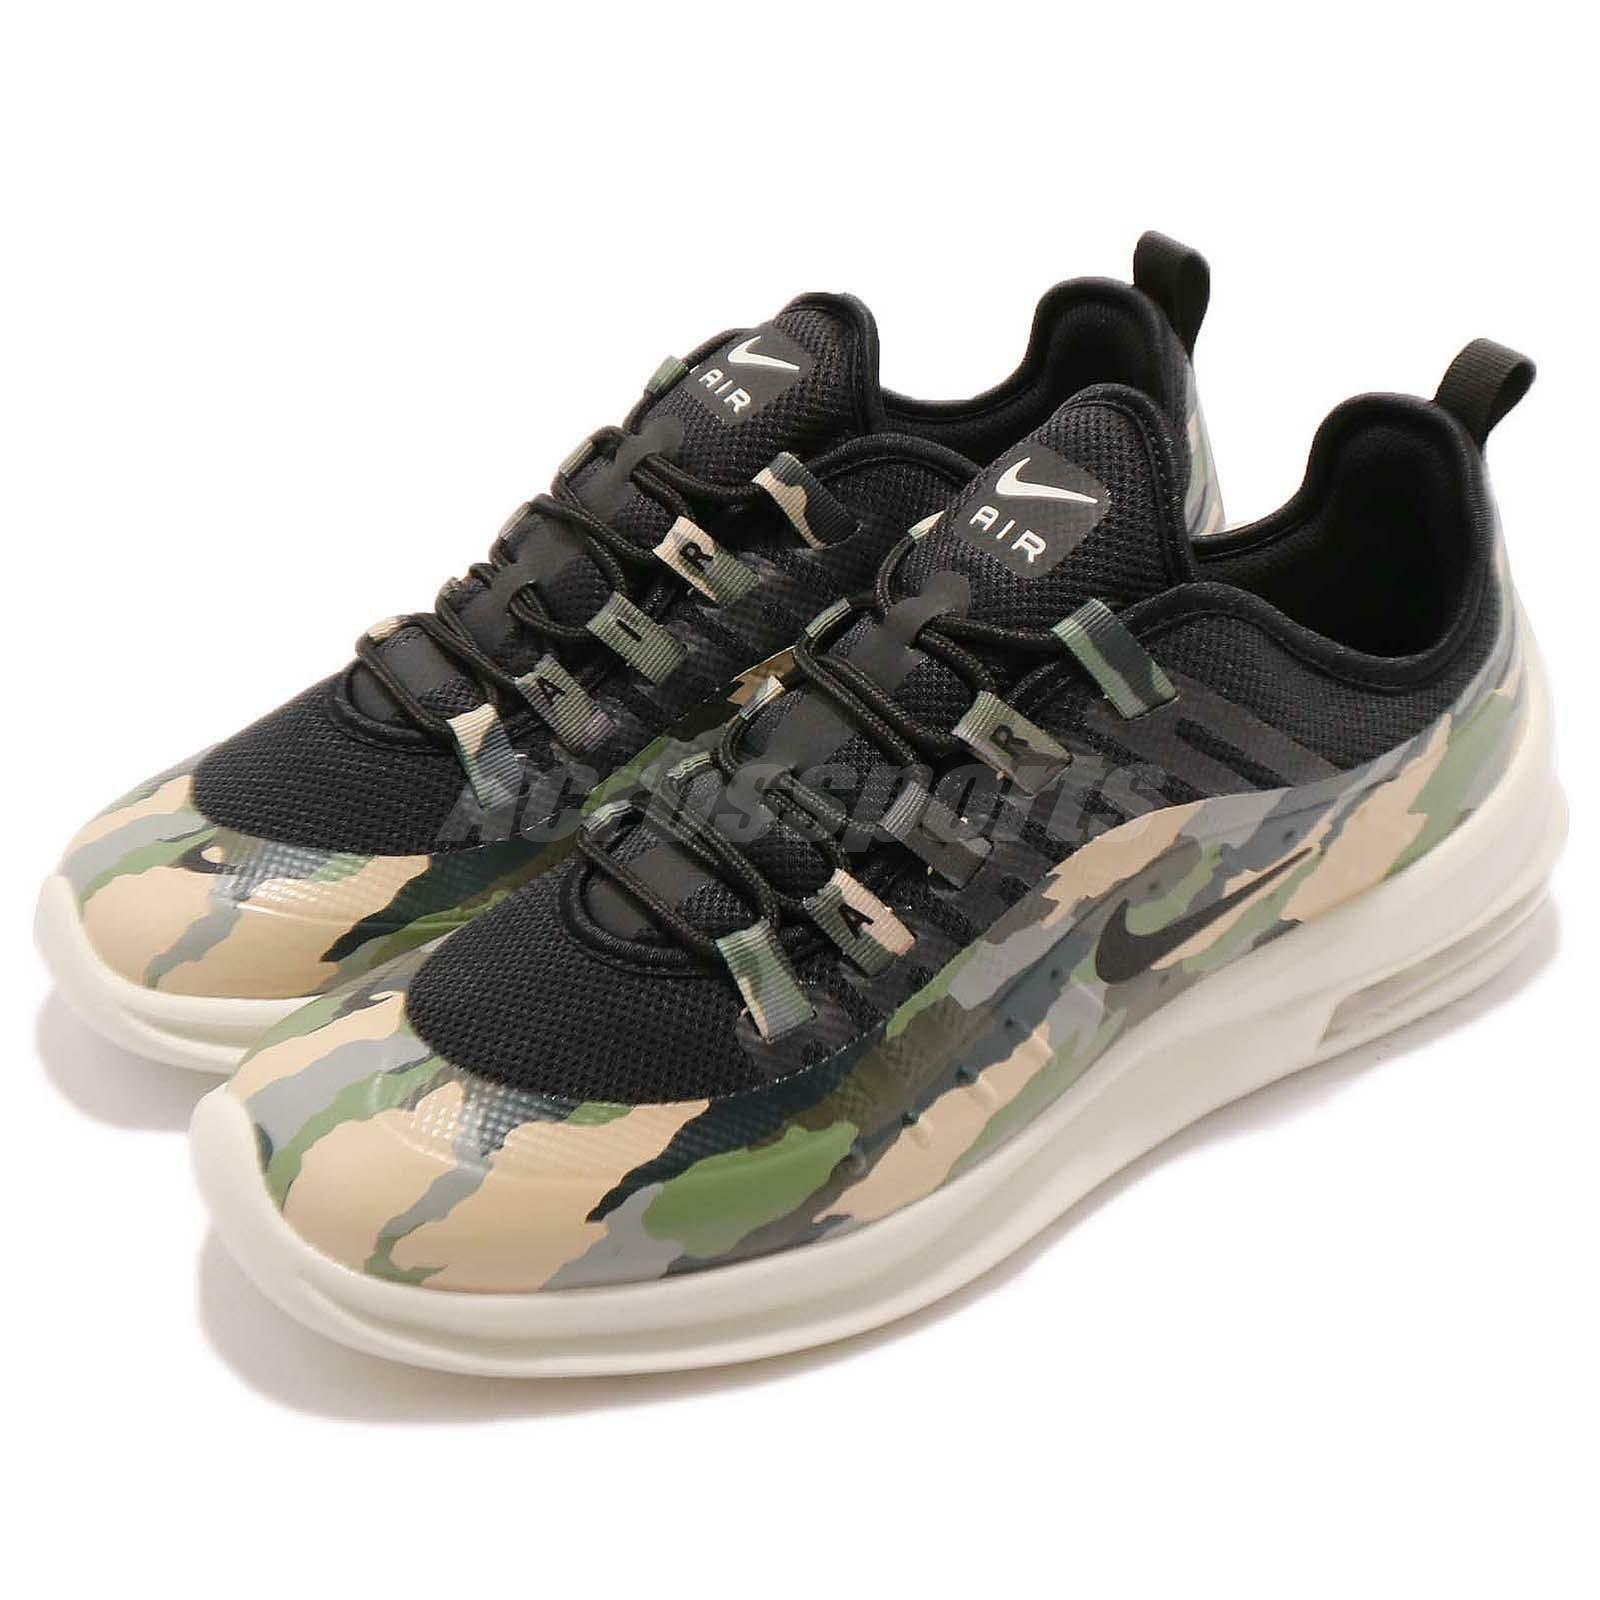 Nike Air Max Axis PREM Black Light Bone Camo Men Running Shoe Sneaker AA2148-001 The latest discount shoes for men and women